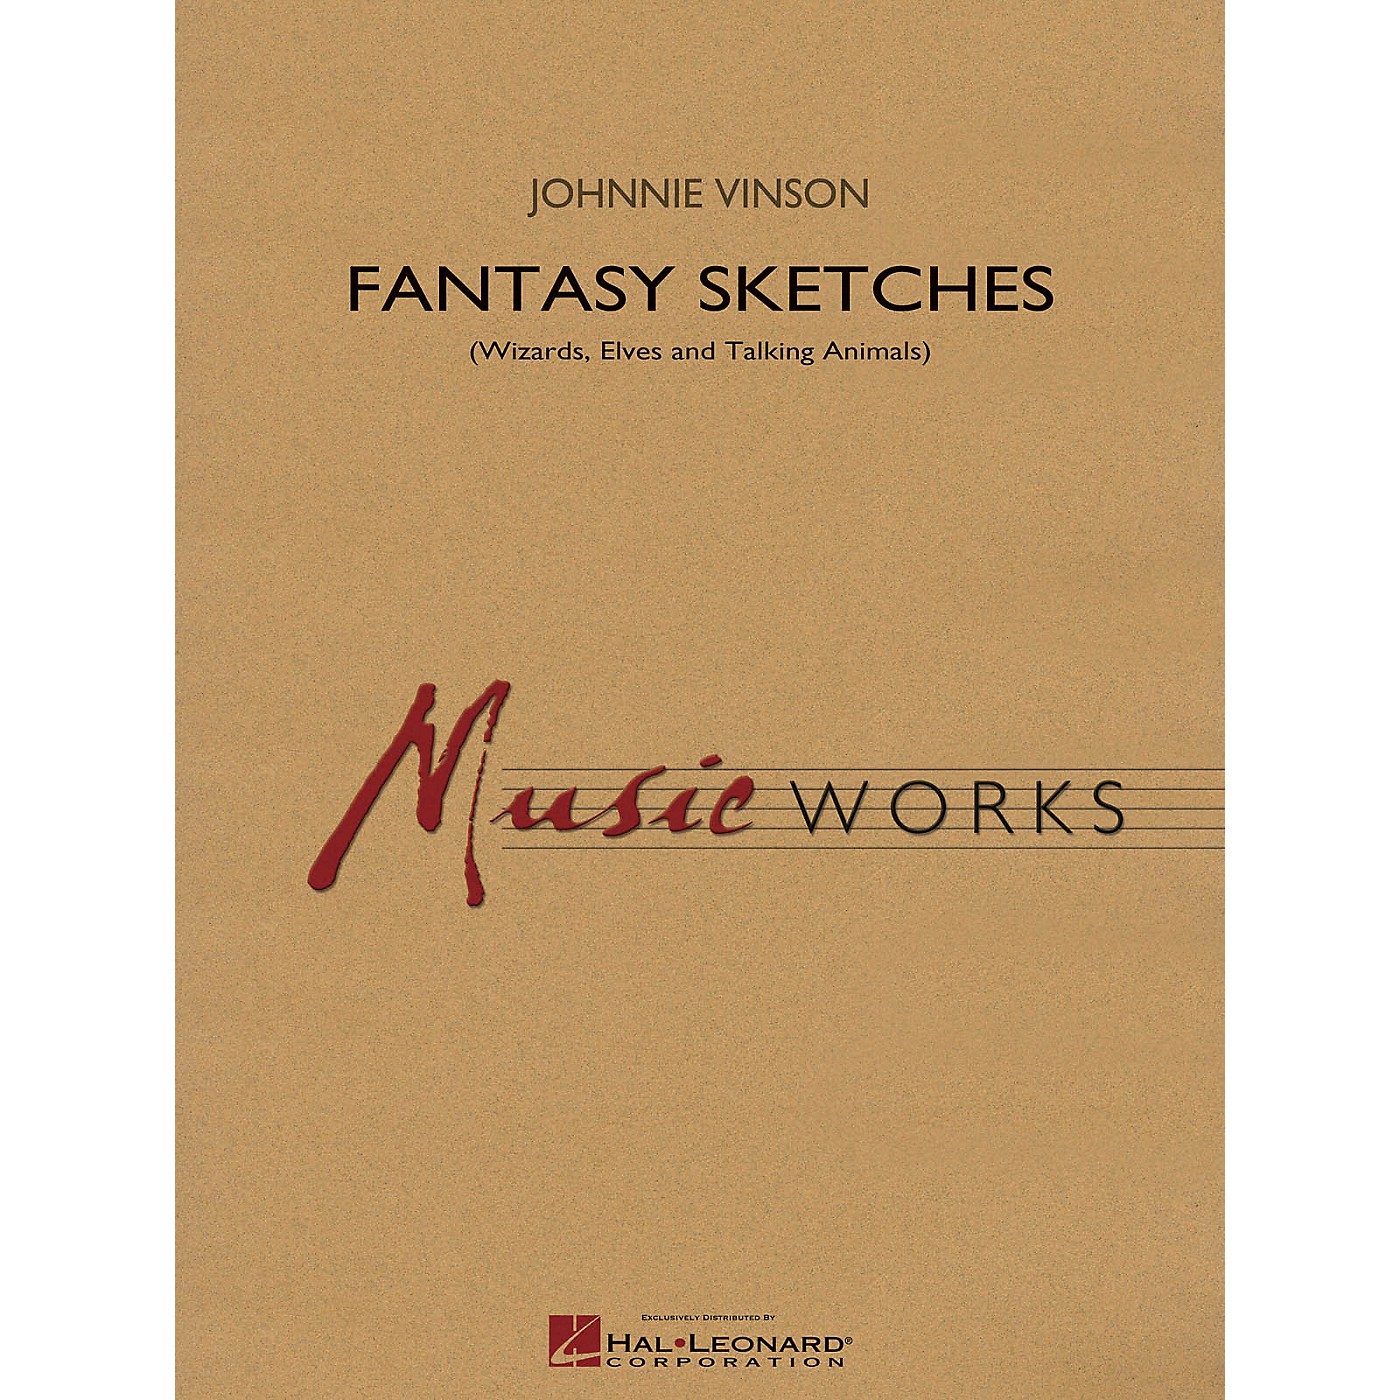 Hal Leonard Fantasy Sketches Concert Band Level 4 Composed by Johnnie Vinson thumbnail